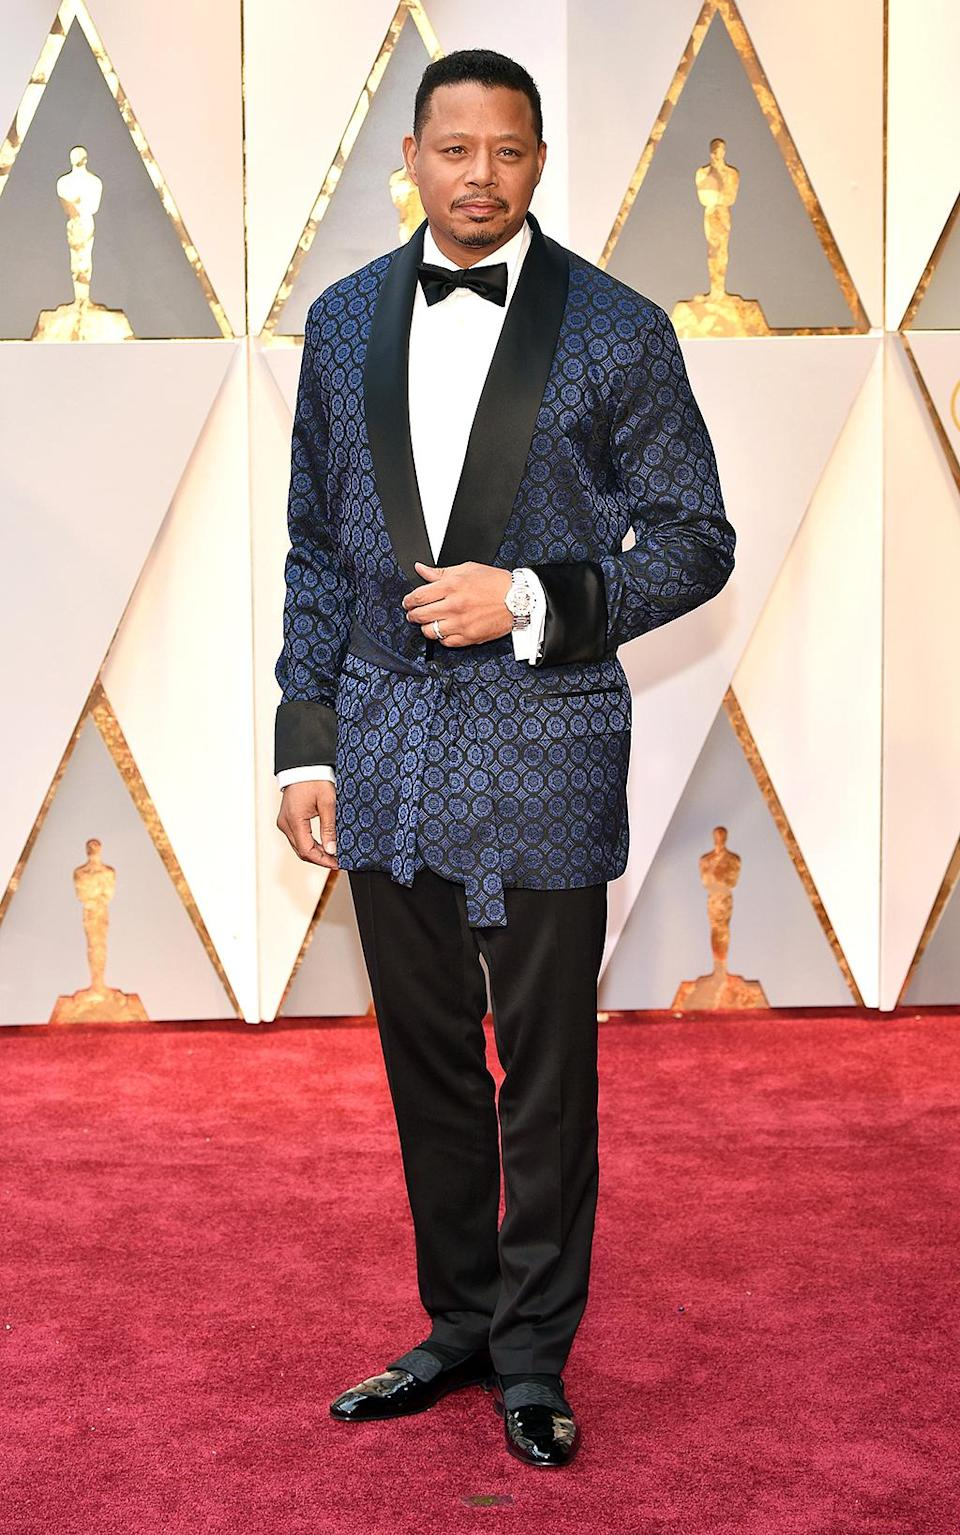 <p>Actor Terrence Howard attends the 89th Annual Academy Awards at Hollywood & Highland Center on February 26, 2017 in Hollywood, California. (Photo by Kevin Mazur/Getty Images) </p>